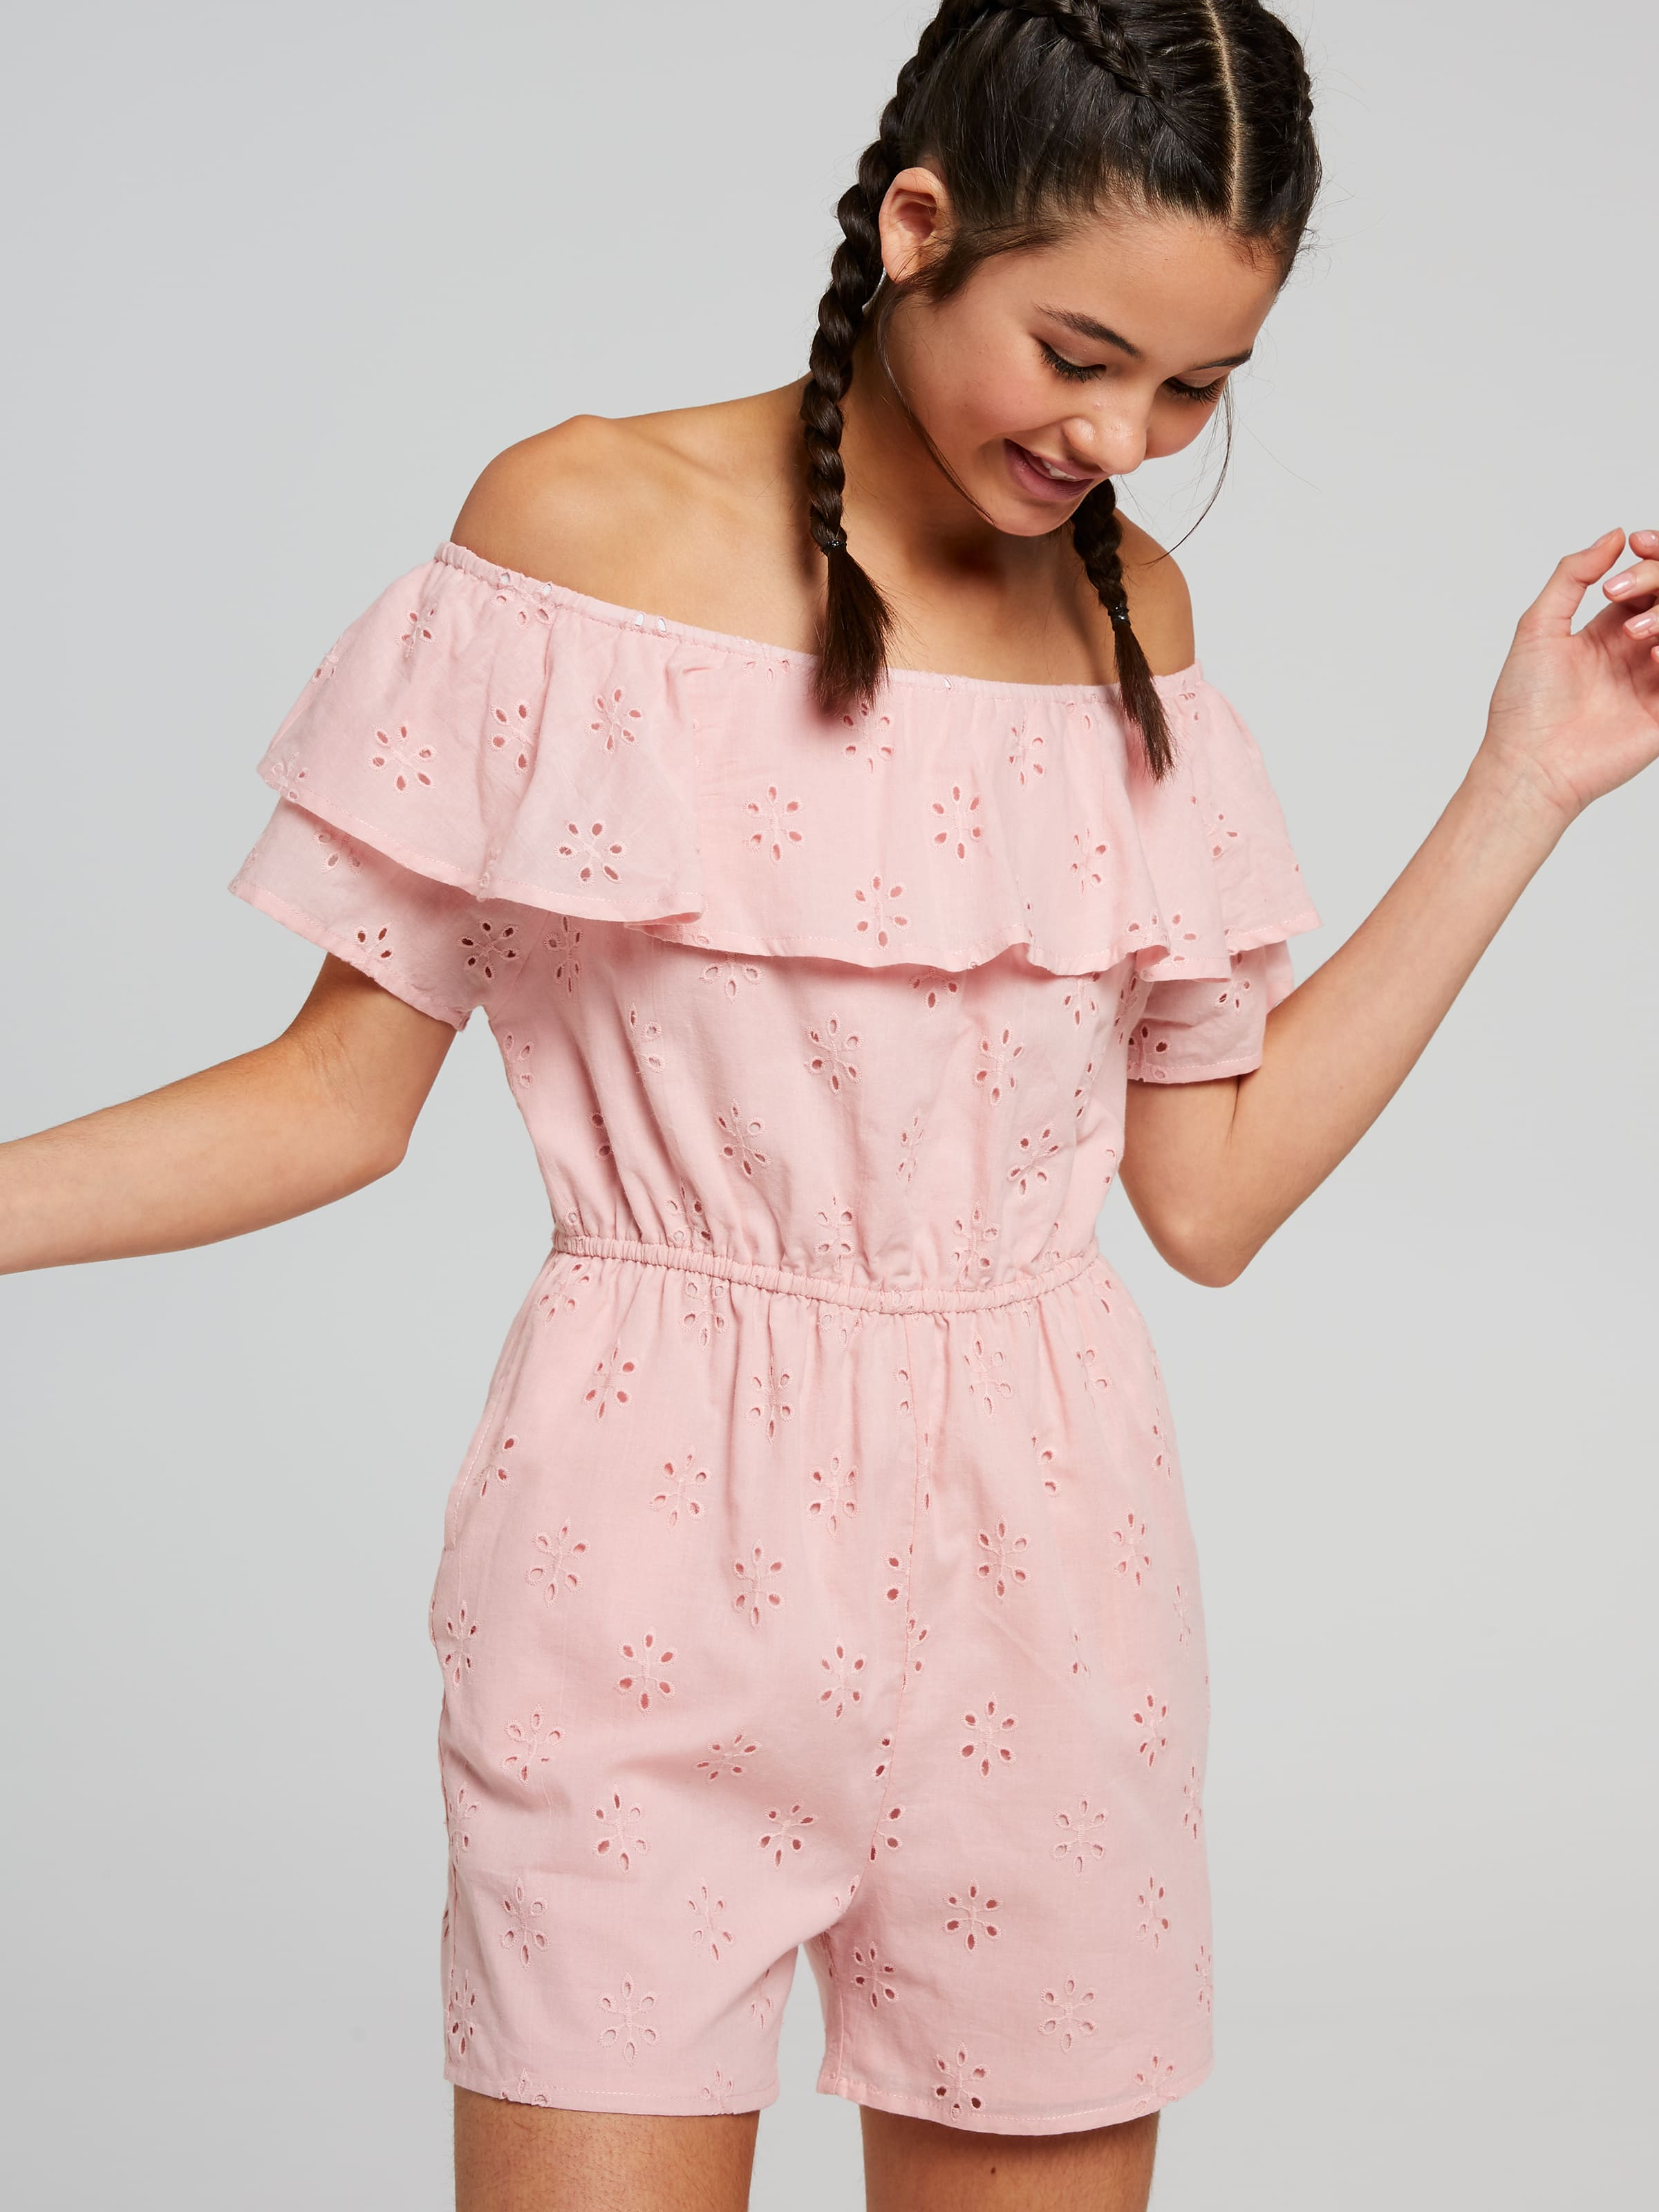 Just Jeans Girls Maddison Frill Playsuit 9239012